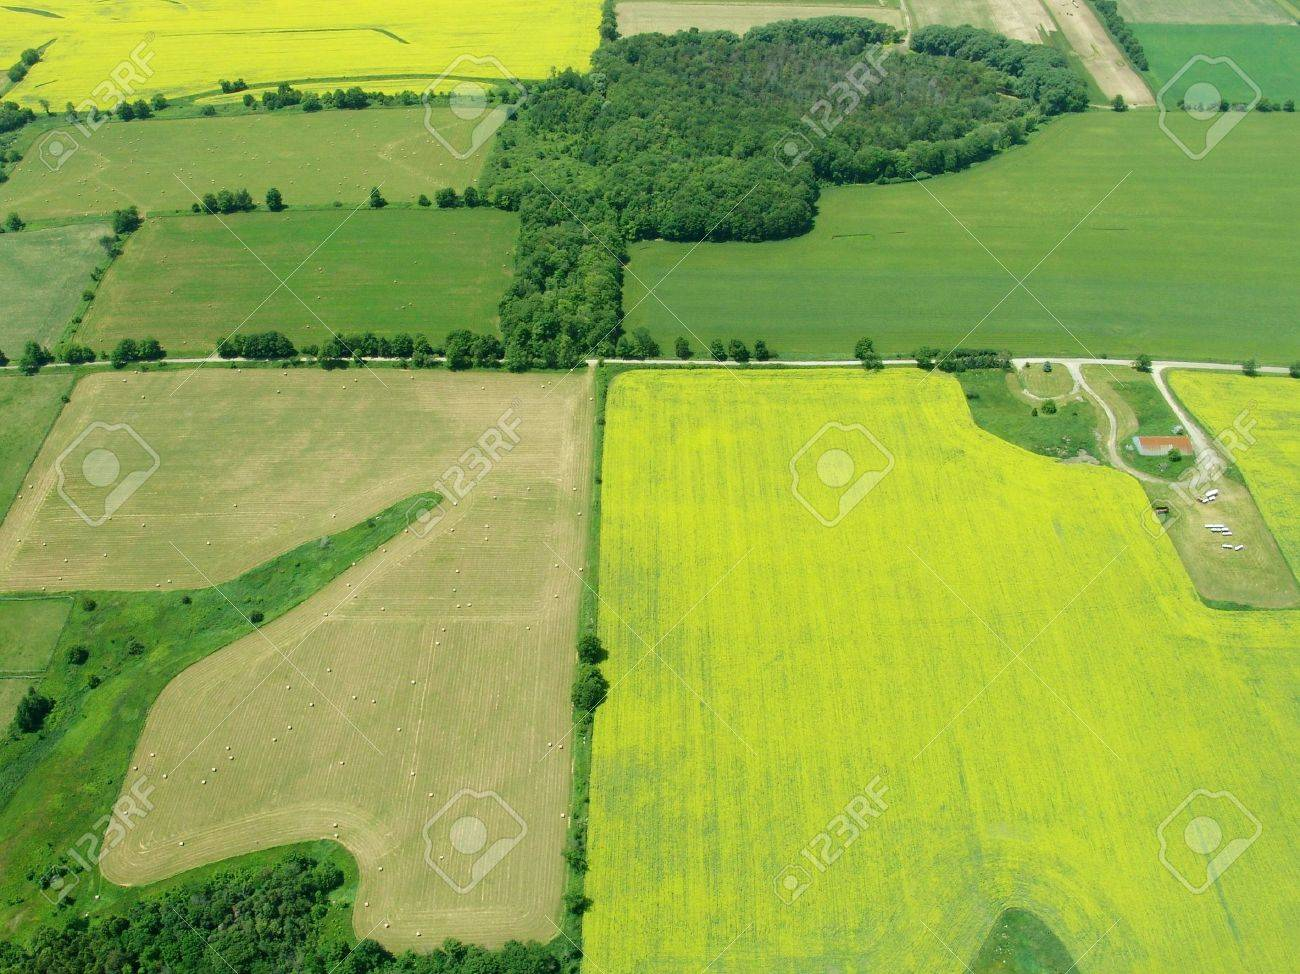 Typical aerial view of green fields and farms, Ontario, Canada - 2706341